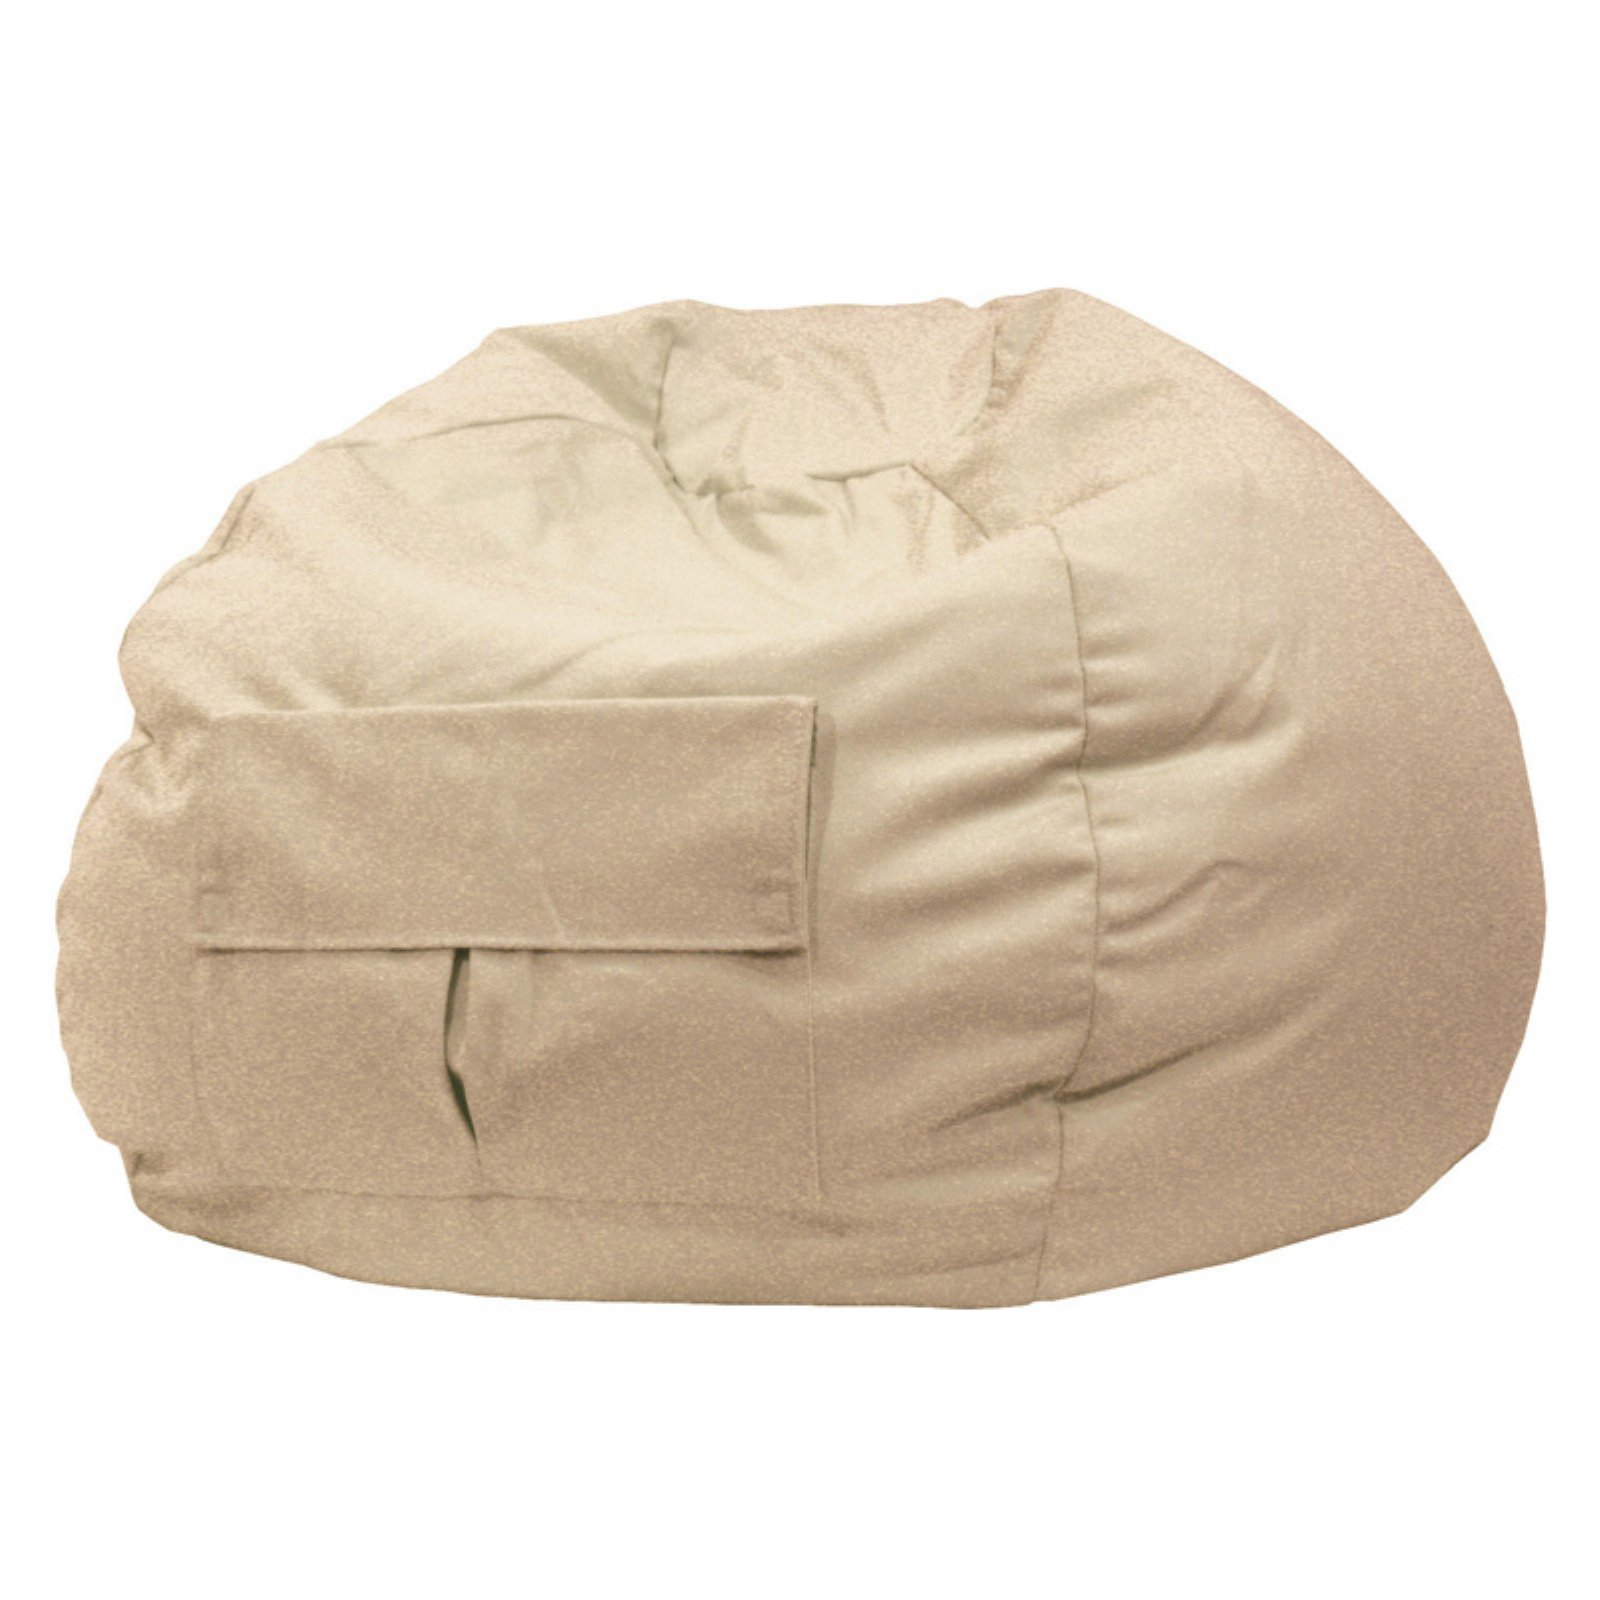 XXL Denim Look Bean Bag with Cargo Pocket